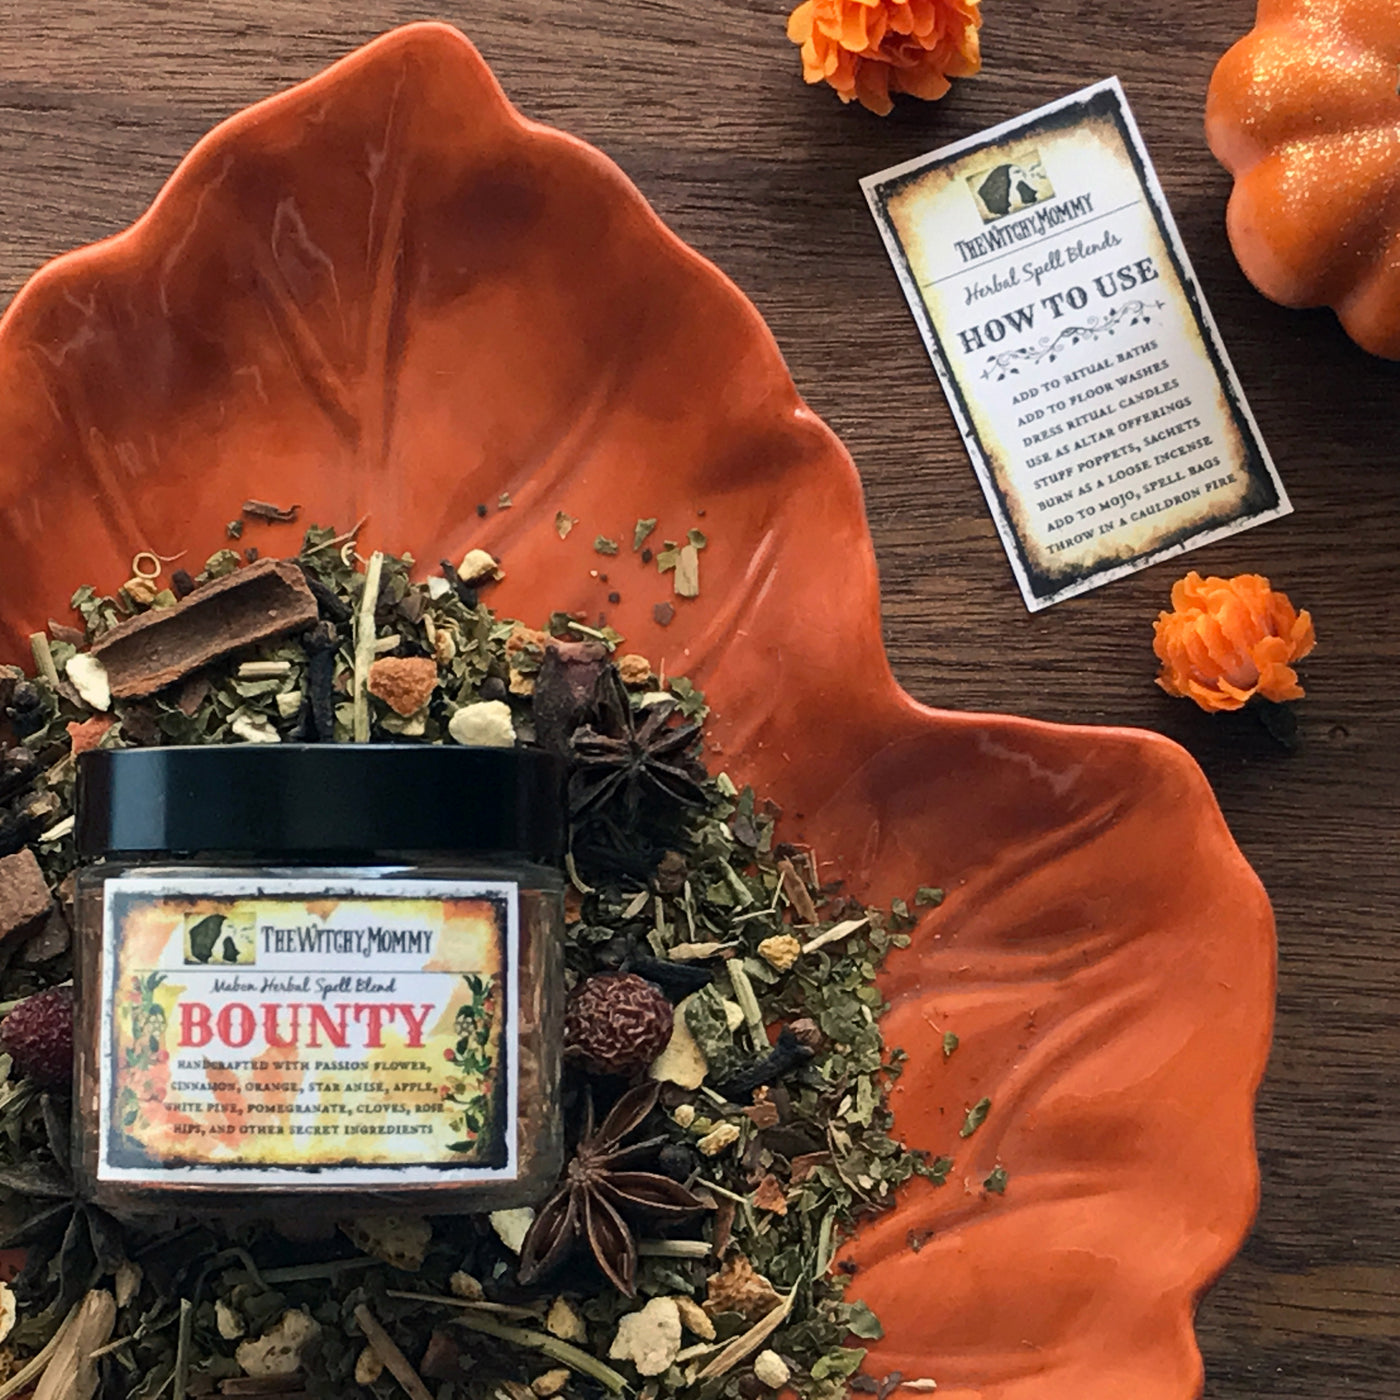 Bounty - Mabon Herbal Spell Blend By The Witchy Mommy